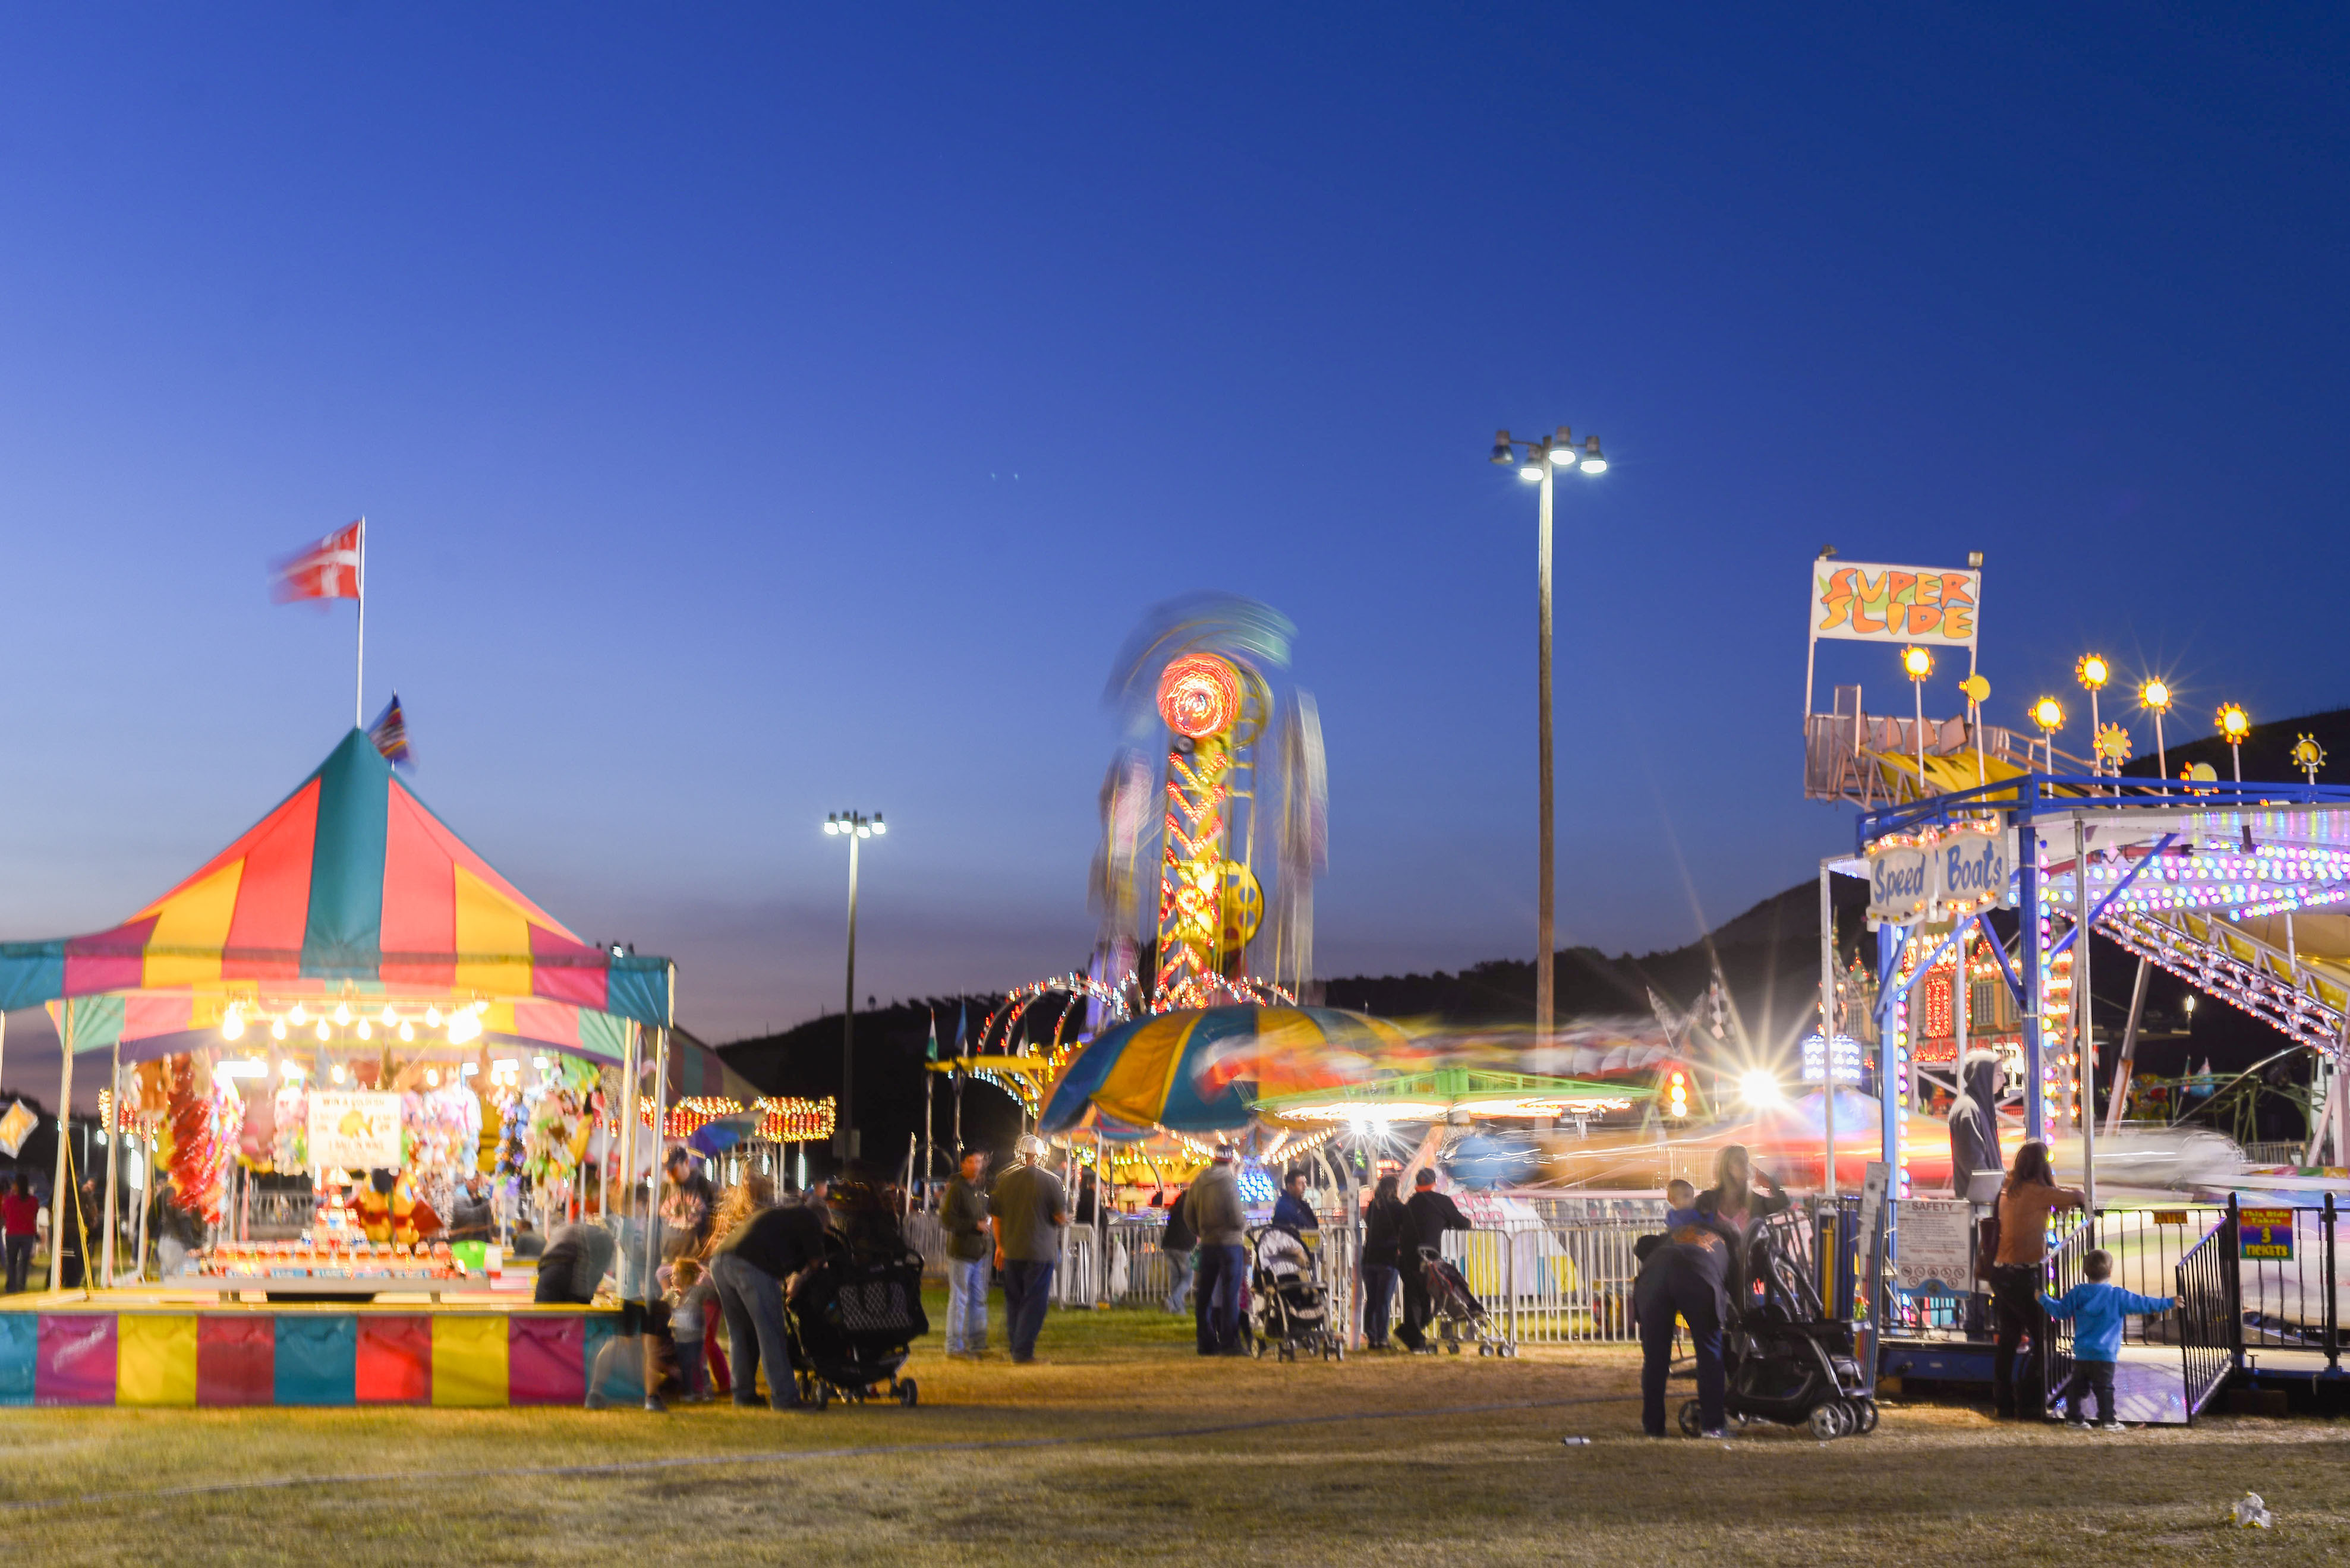 Bolado Park hosts a variety of events such as weddings, parties, the Saddle Horse Show and the San Benito County Fair. File photo.